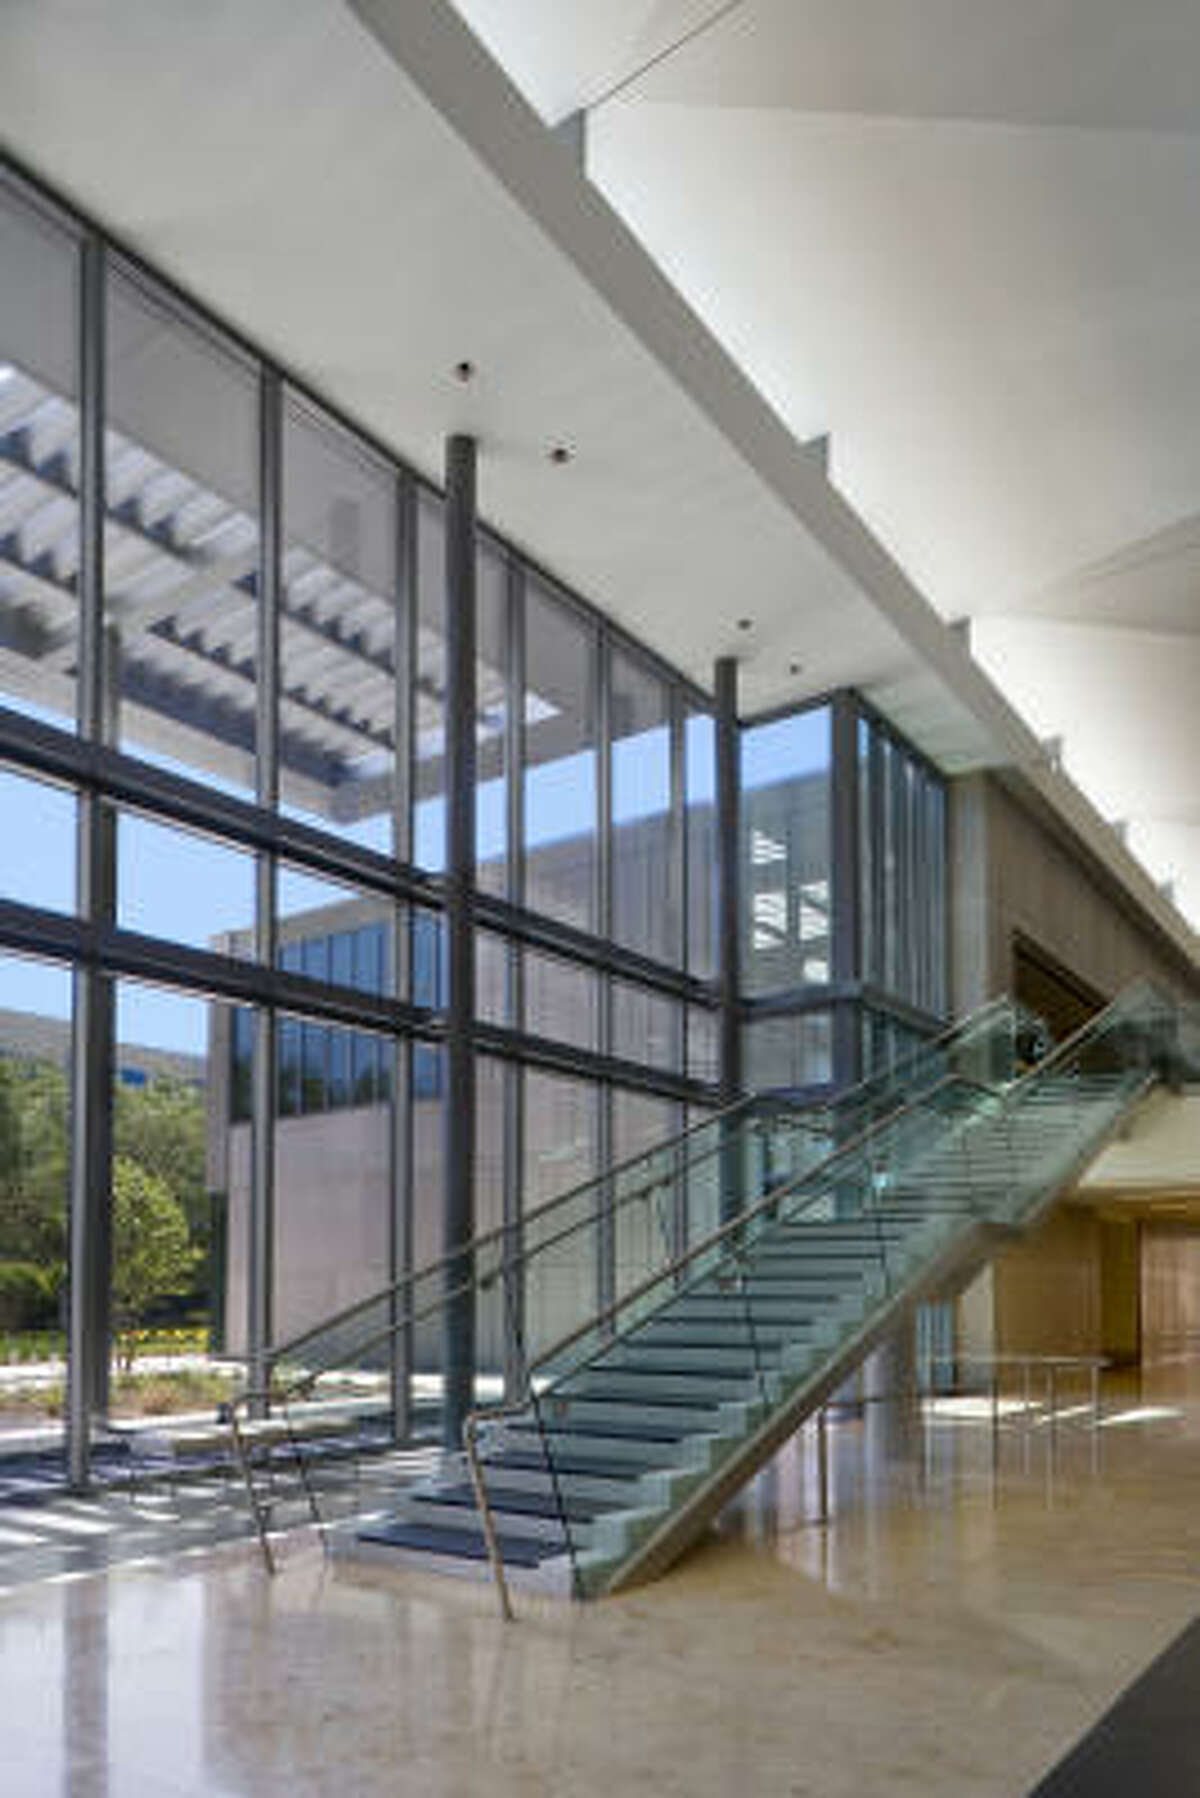 Sysco Foods Headquarters was built using many natural, regional materials, including the limestone floors pictured here.